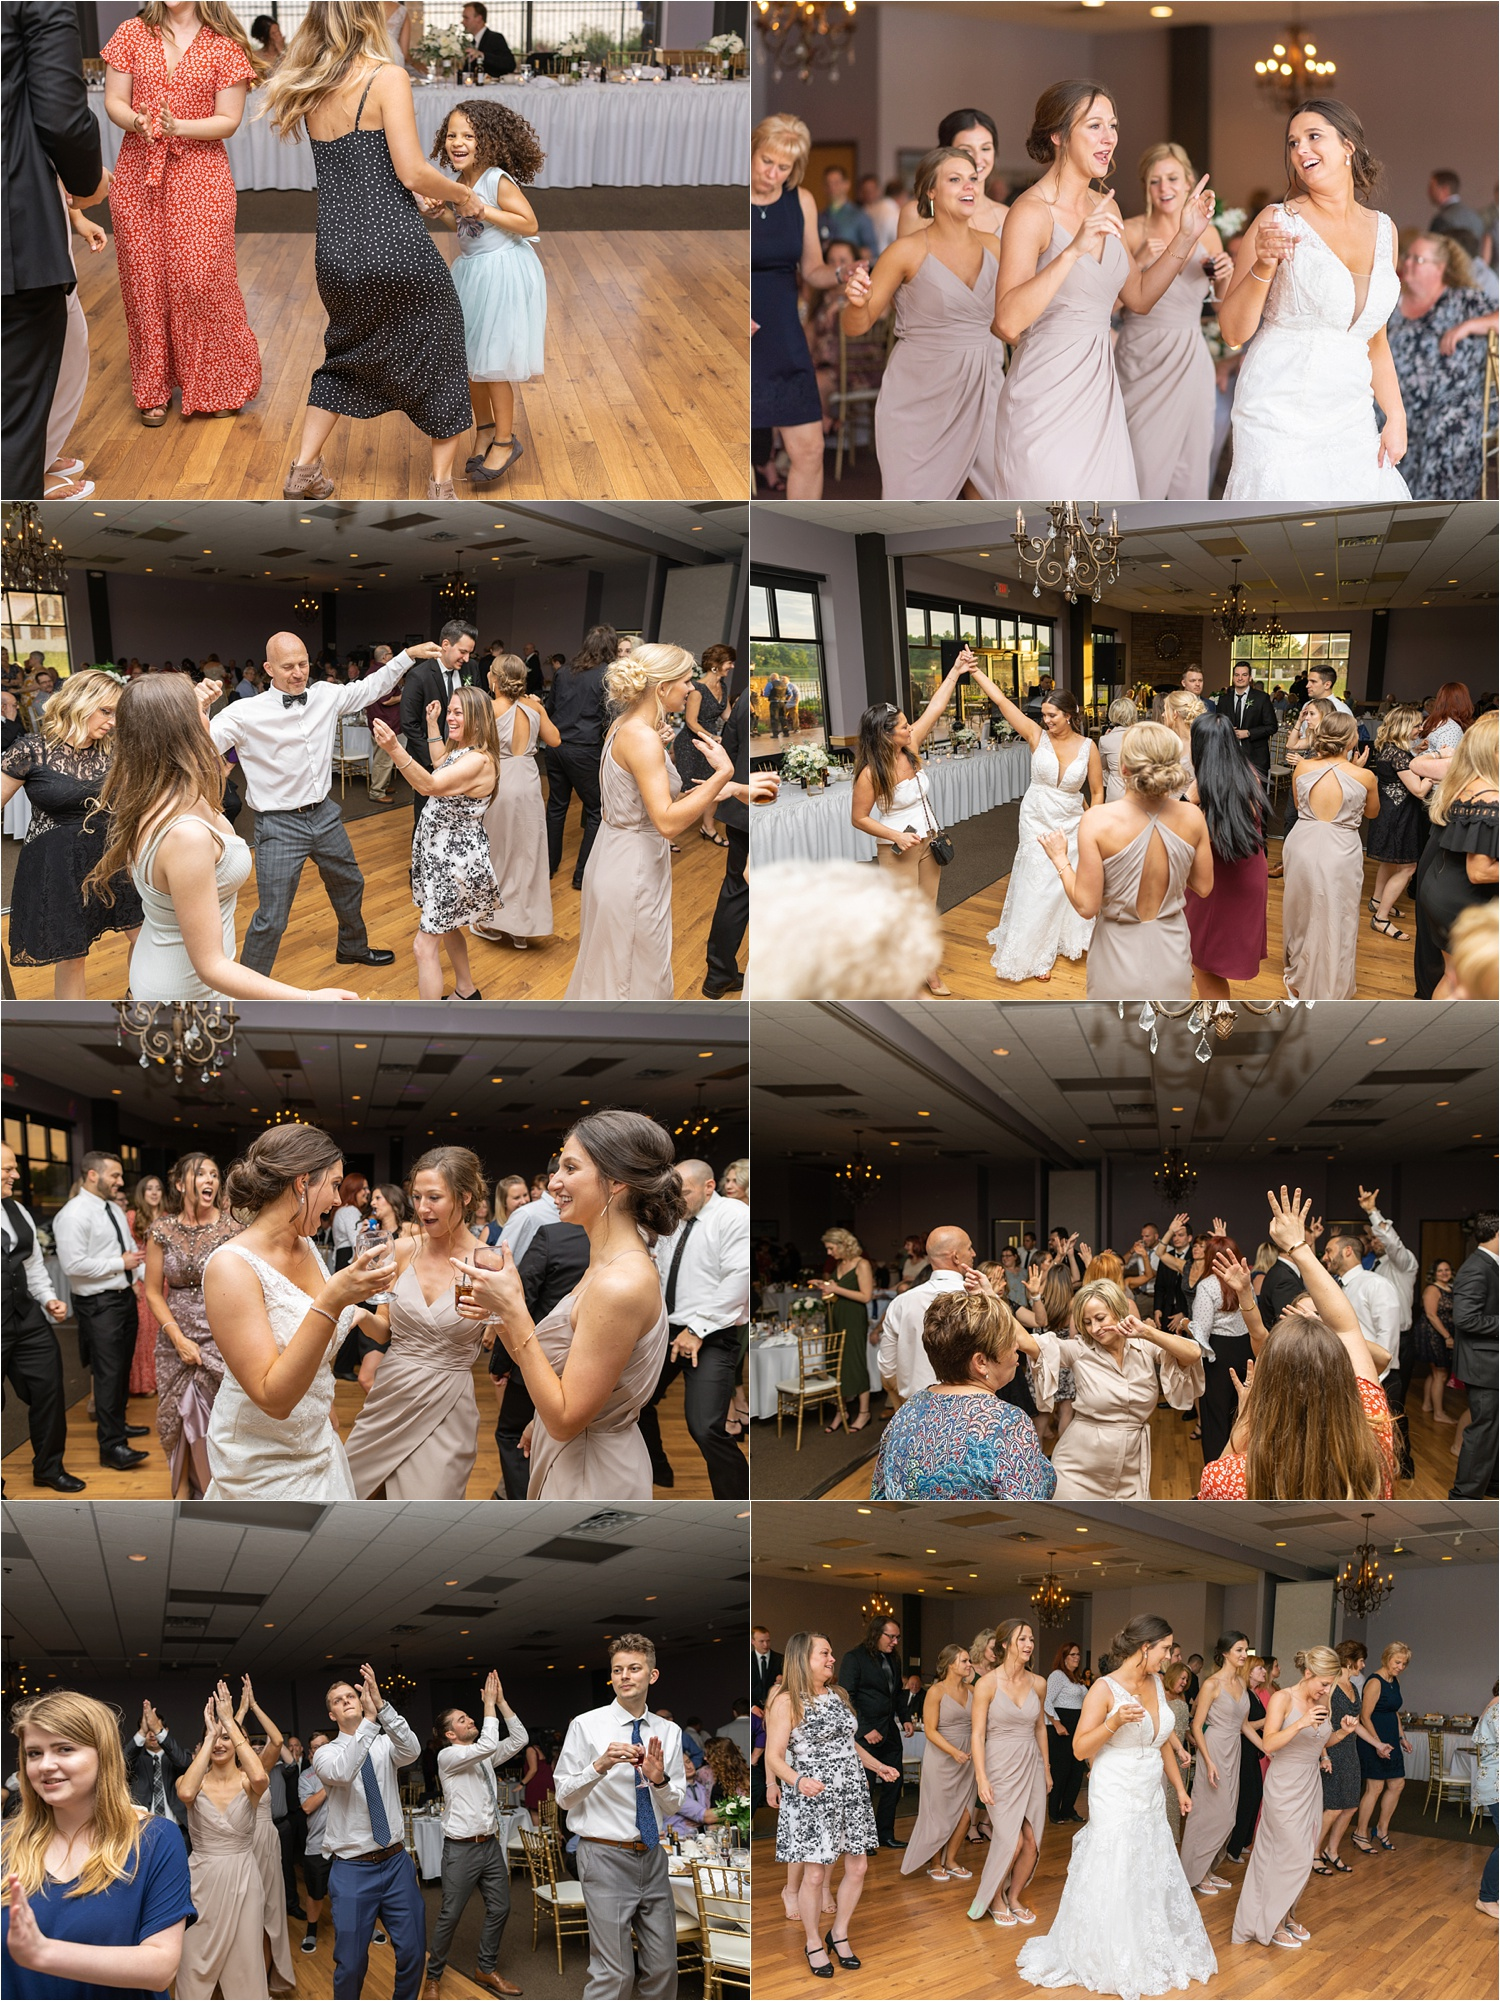 youngstown wedding reception dancing photos at avion on the water